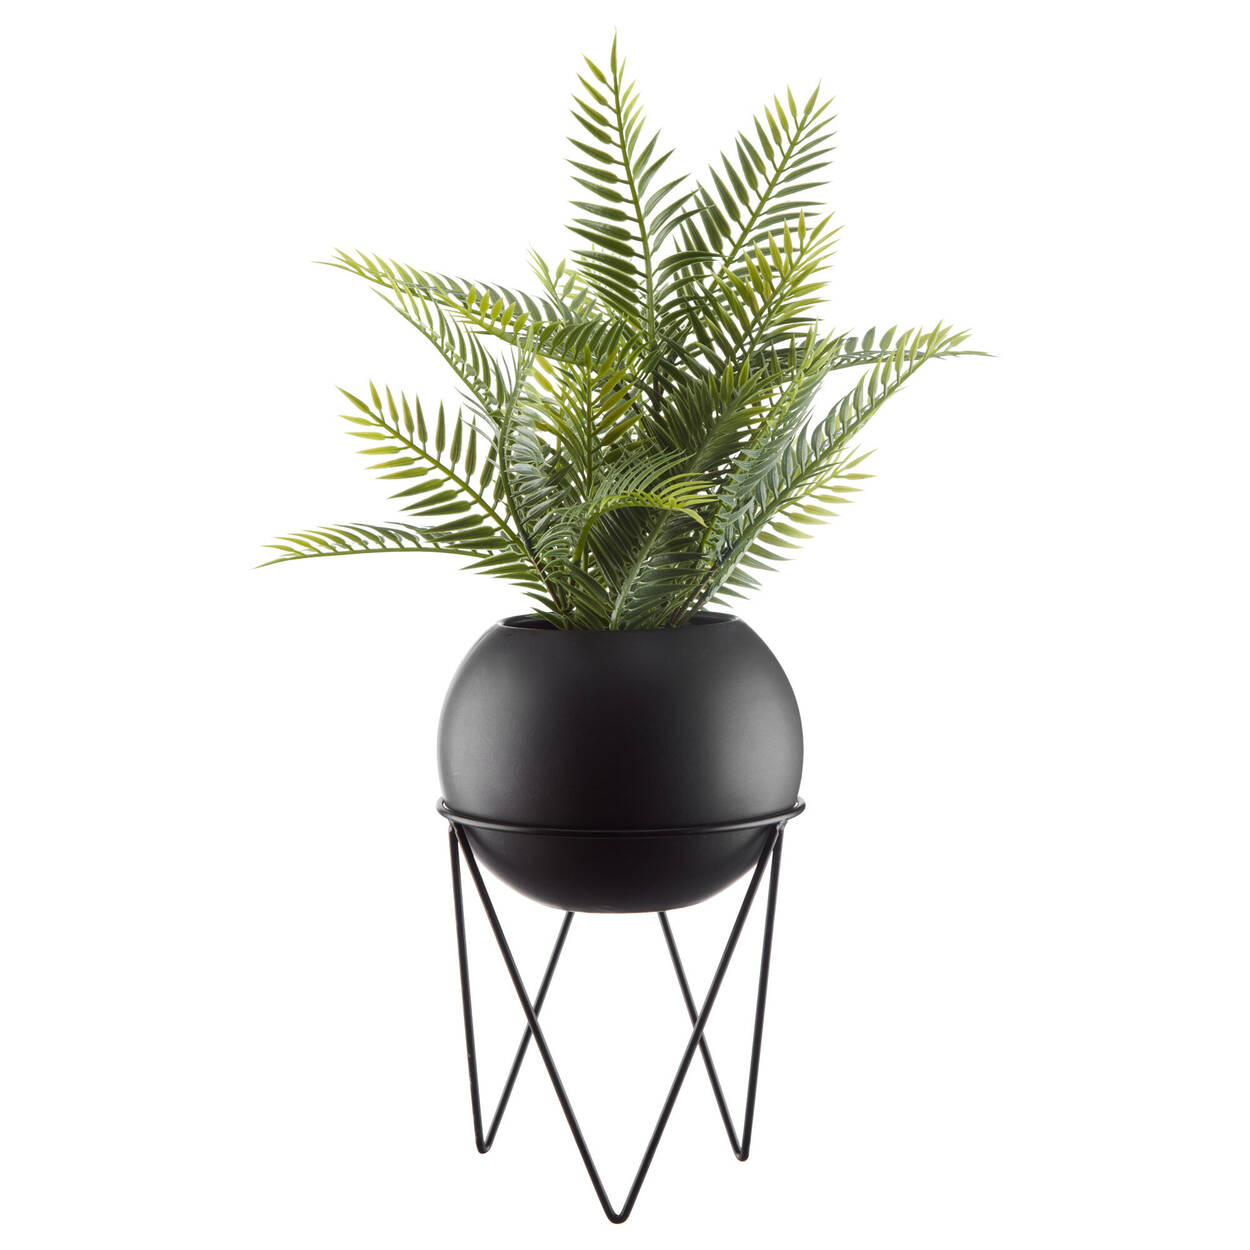 Fern in Hairpin-Legs Planter